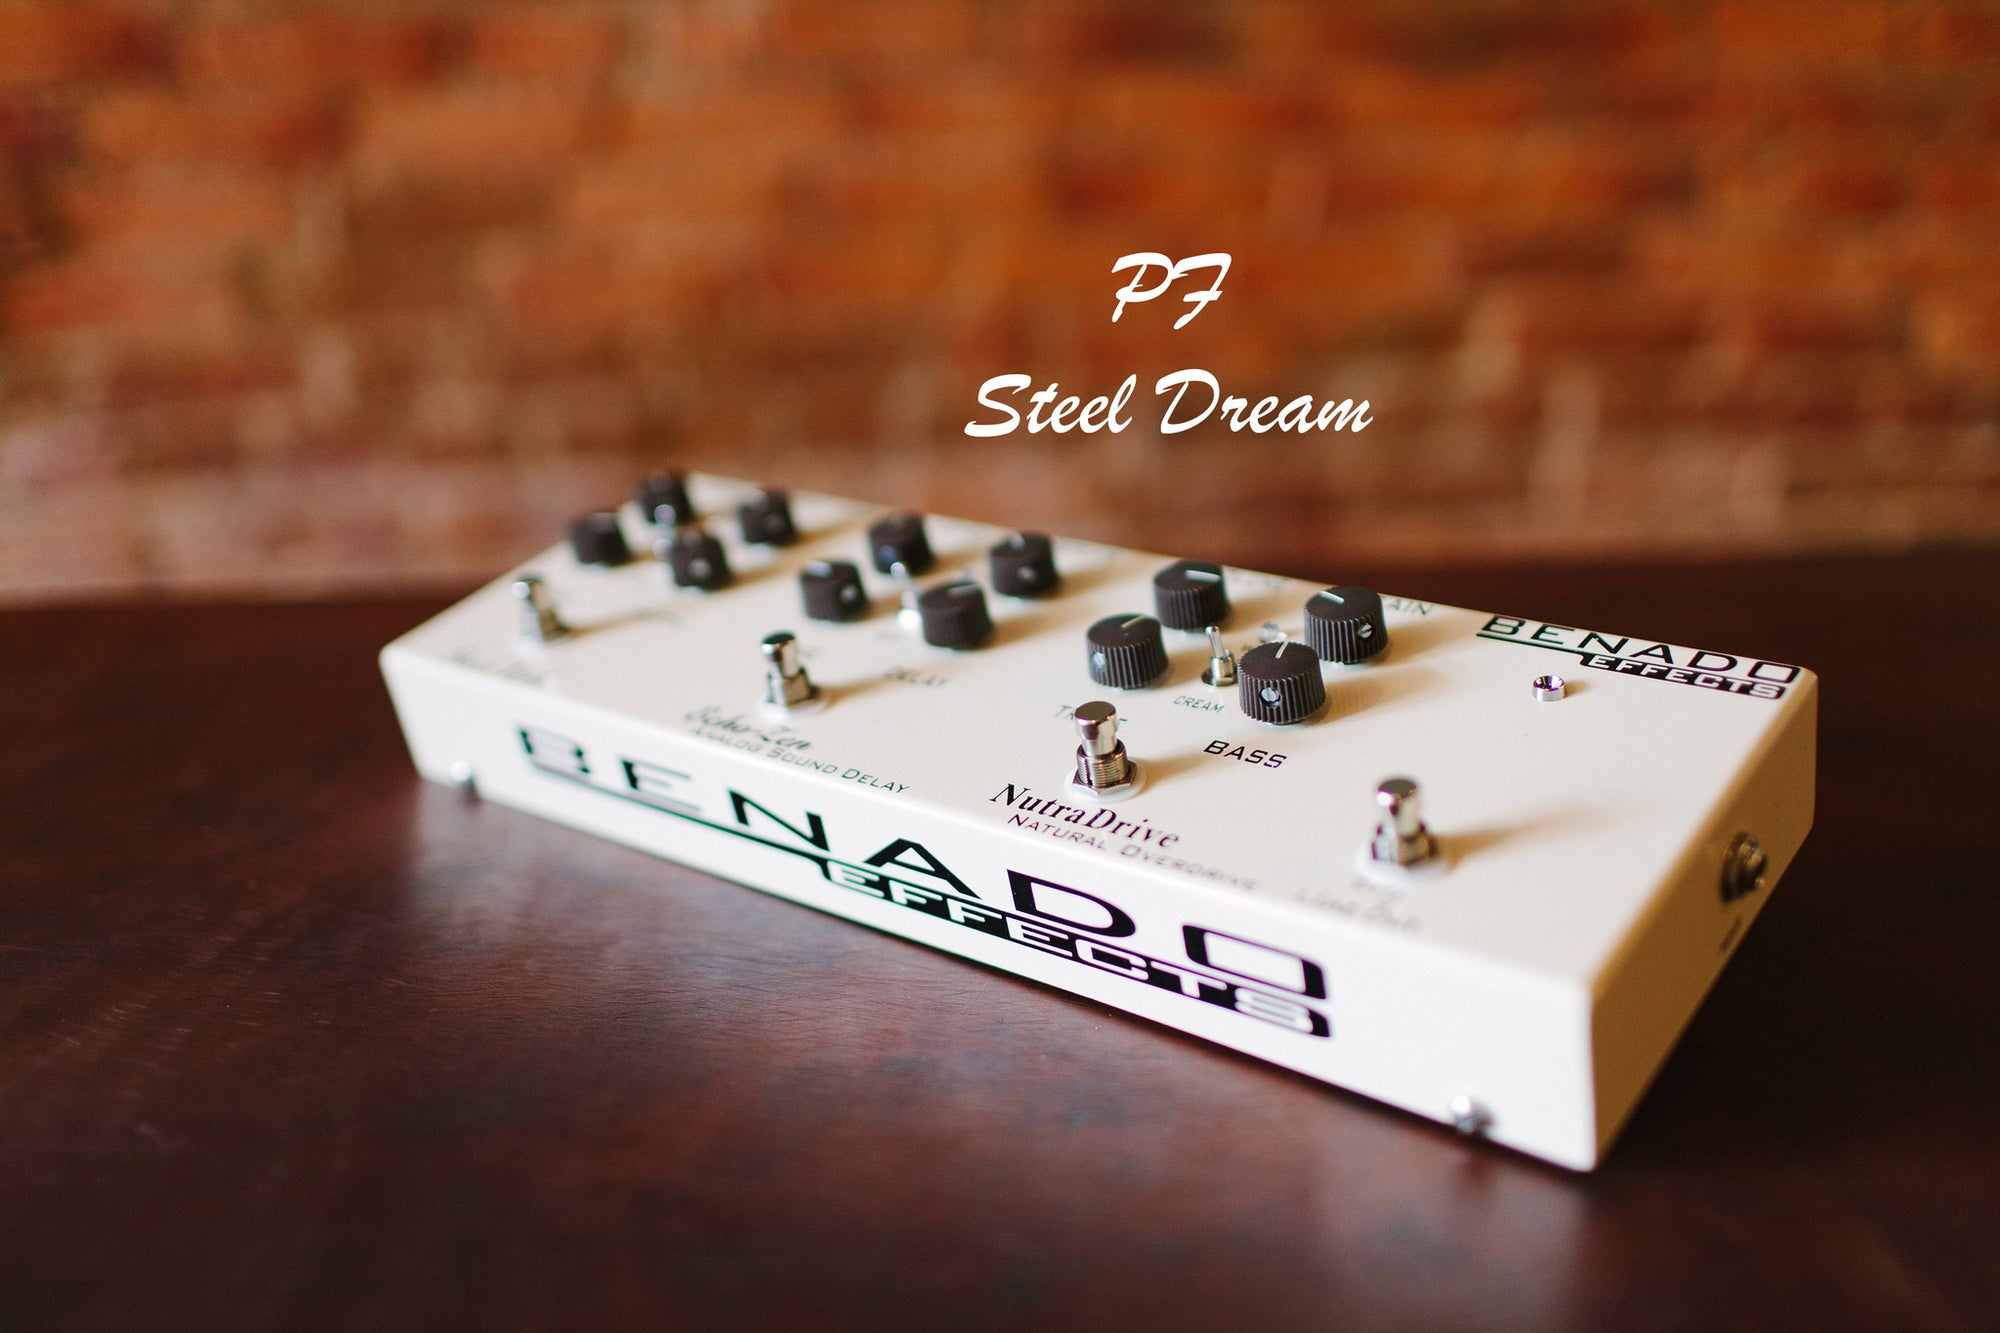 The PF-Steel Dream <br> Benado Effects -  (Paul Franklin signature).